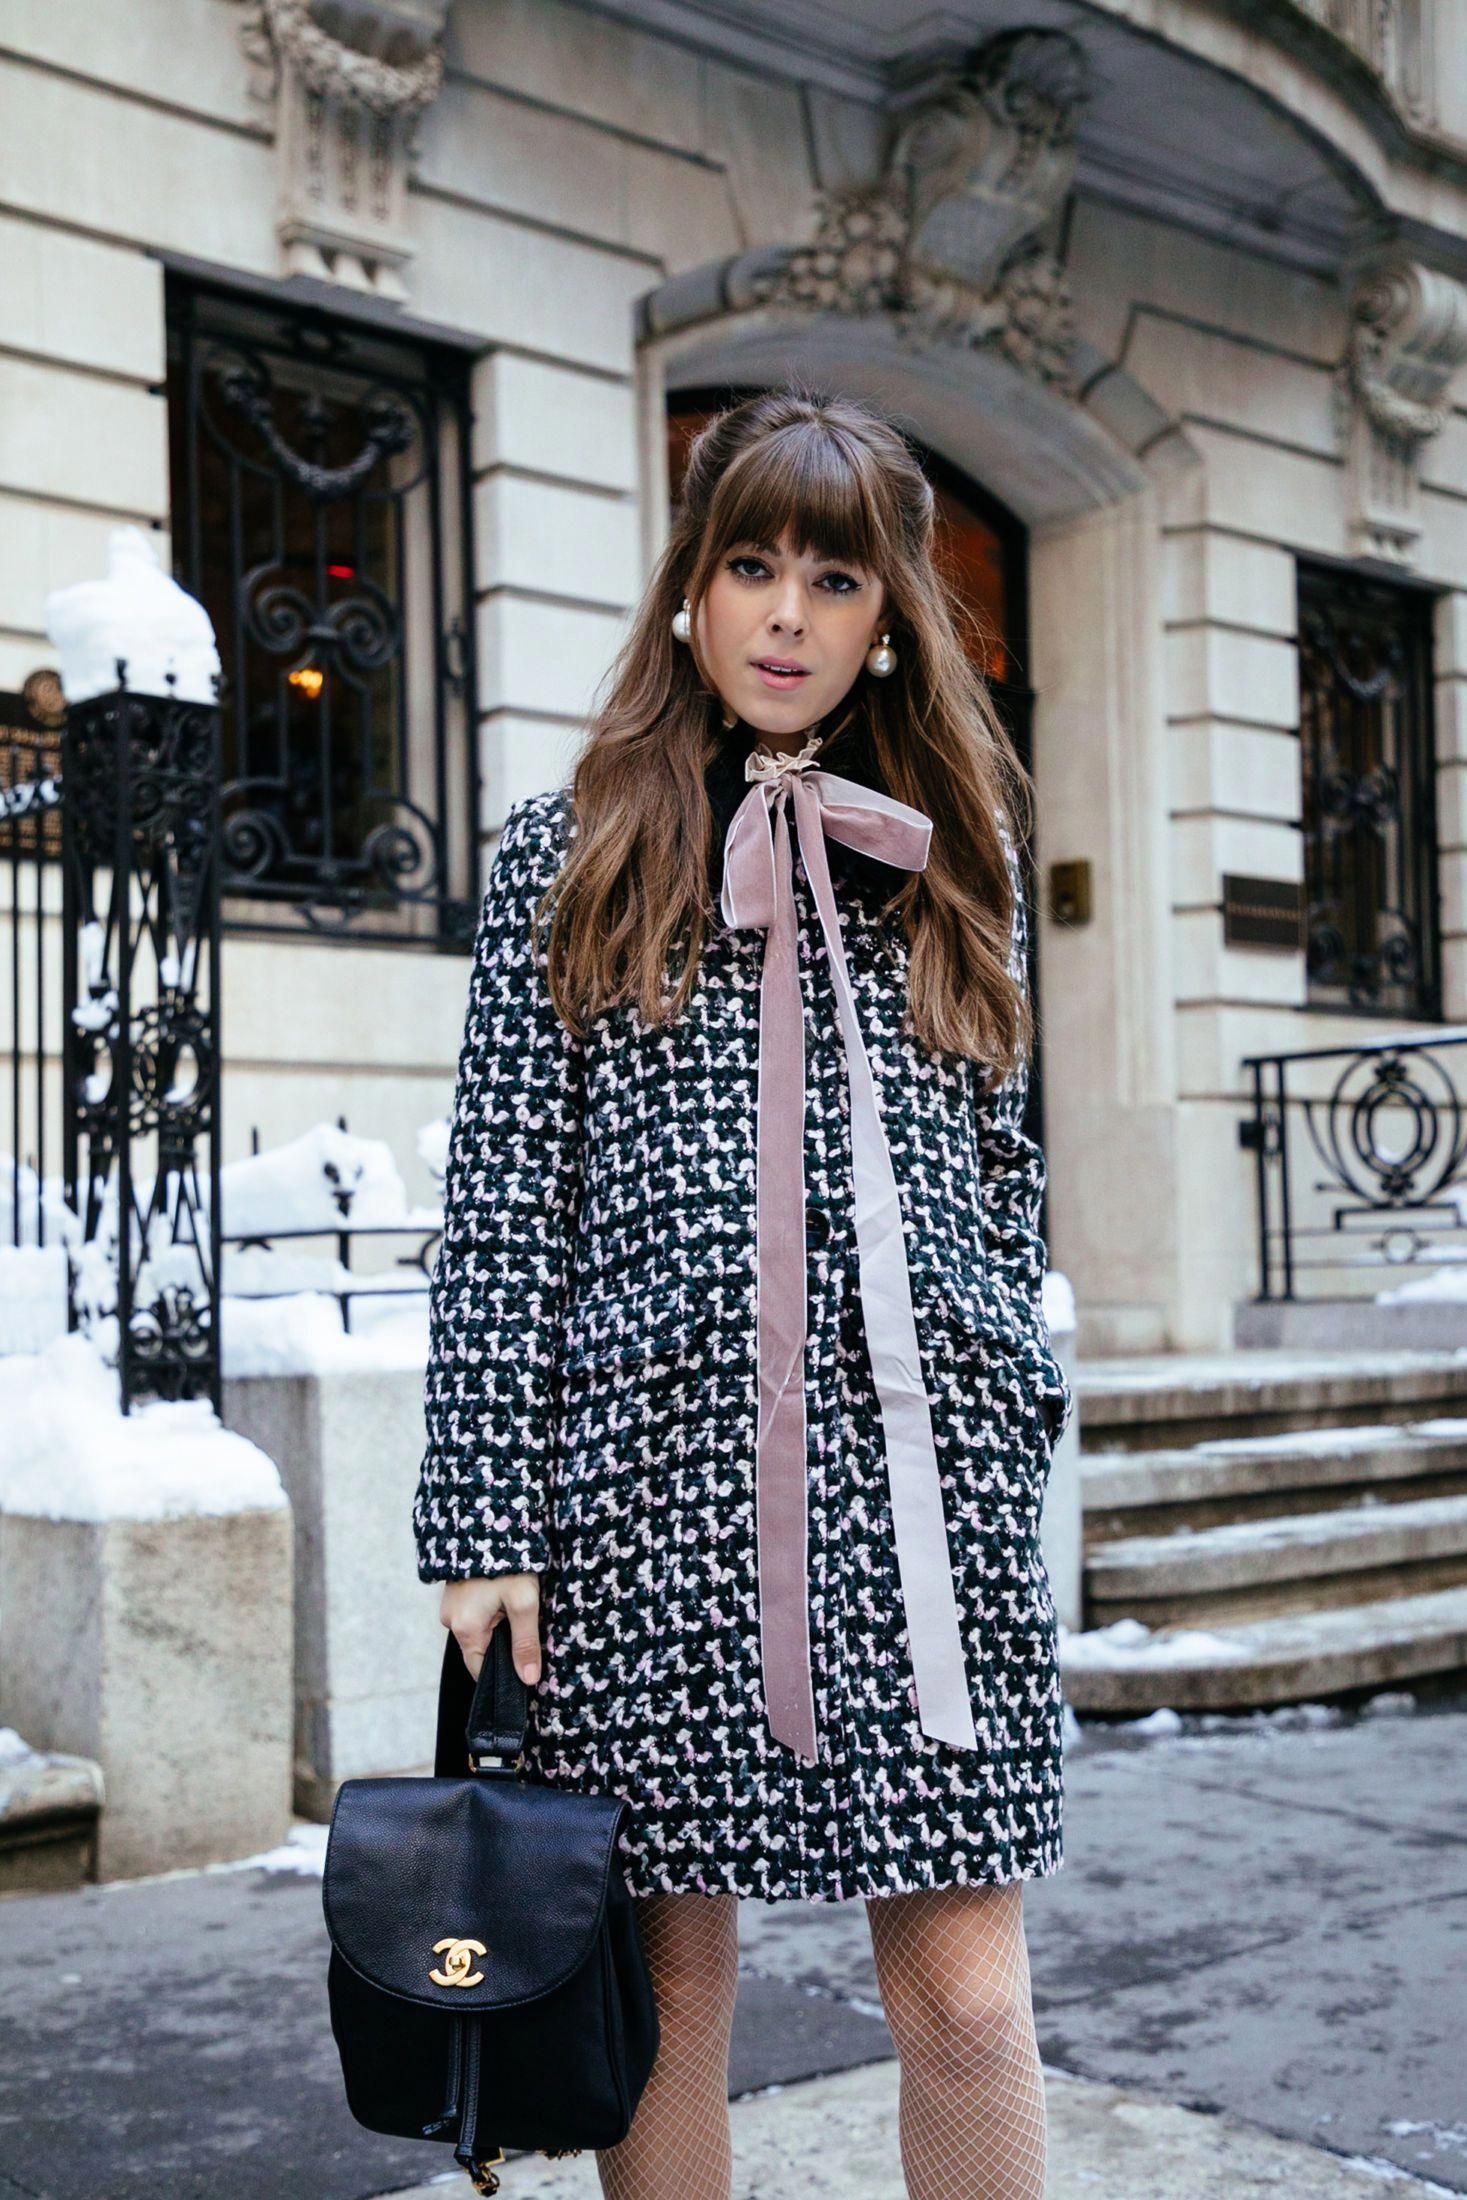 Tweed Coat Street Style | Jenny Cipoletti of Margo & Me